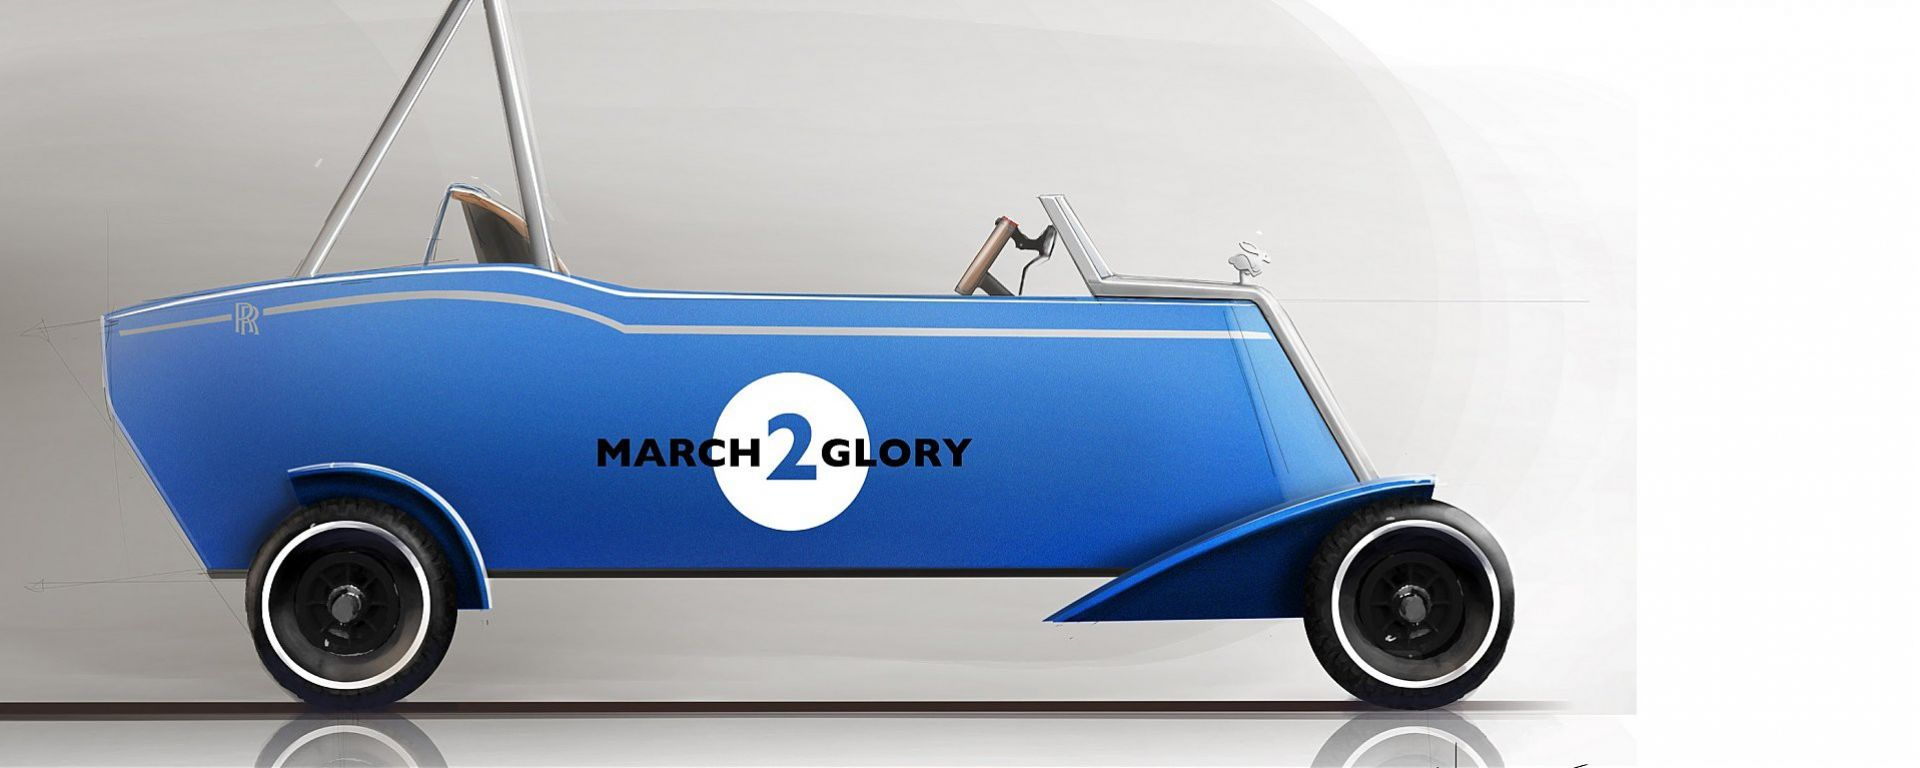 Rolls-Royce March 2 Glory